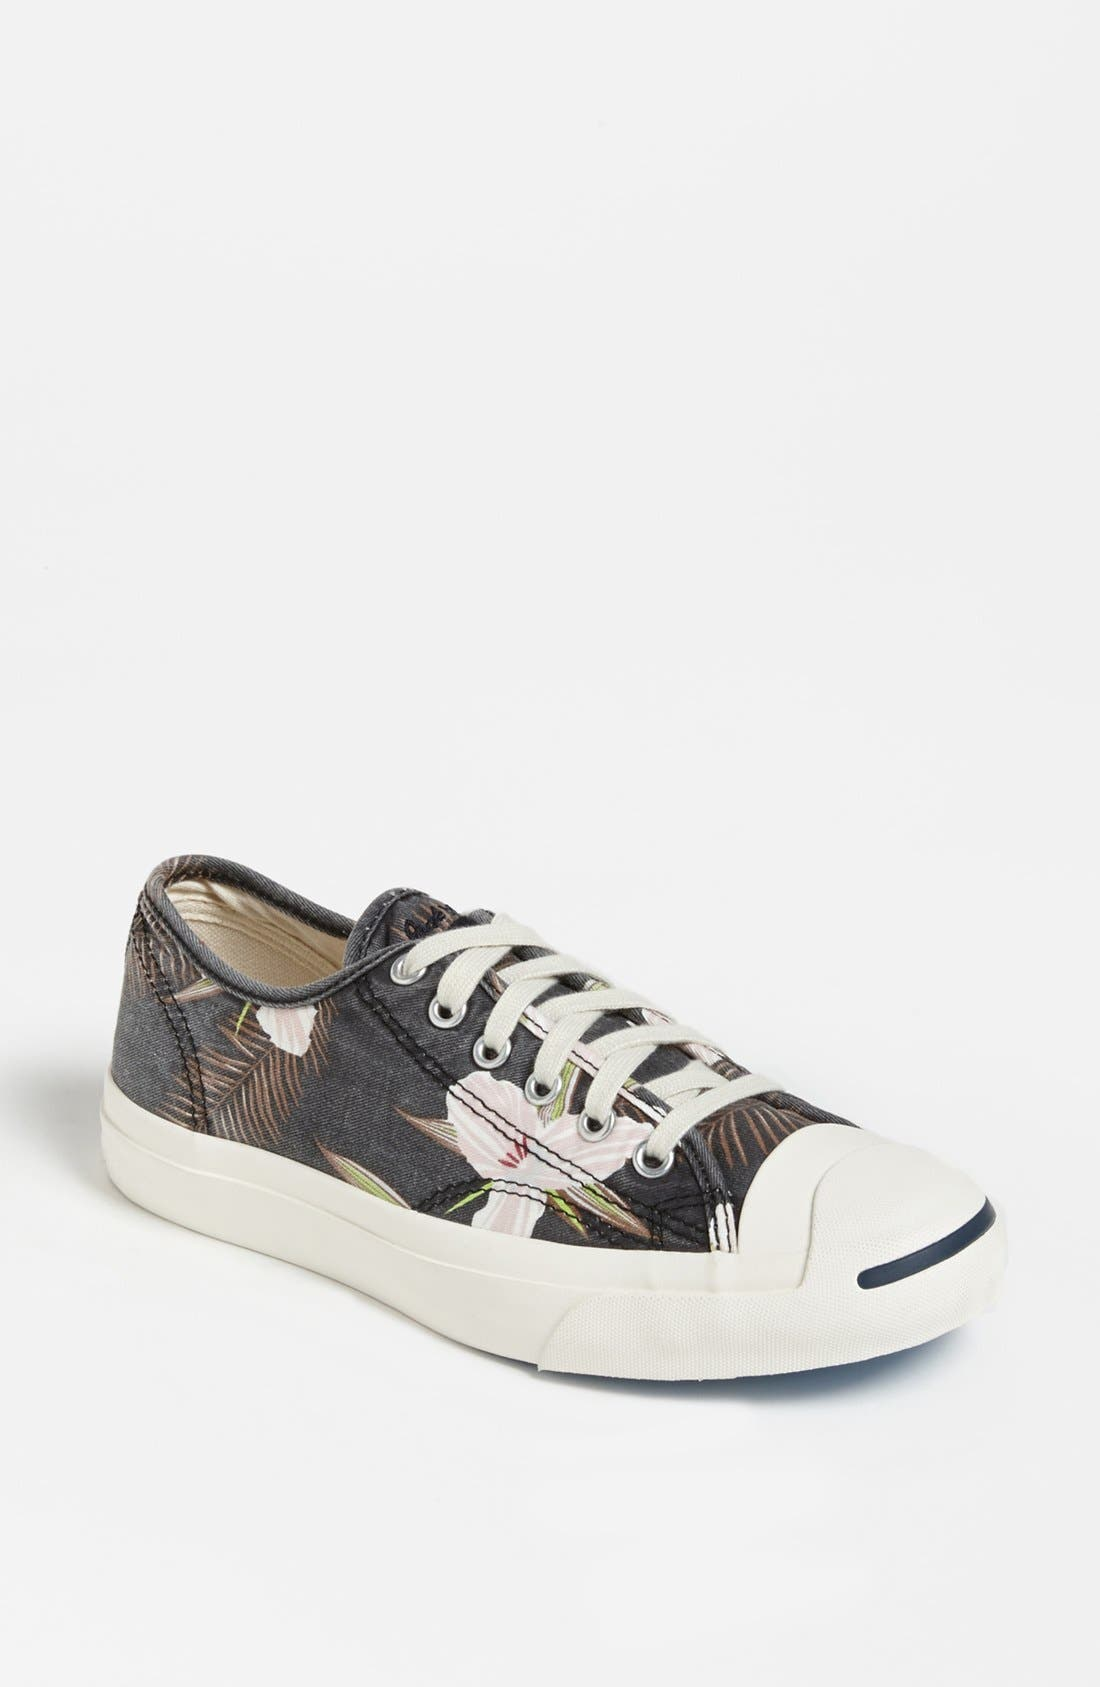 Main Image - Converse 'Jack Purcell' Sneaker (Women)